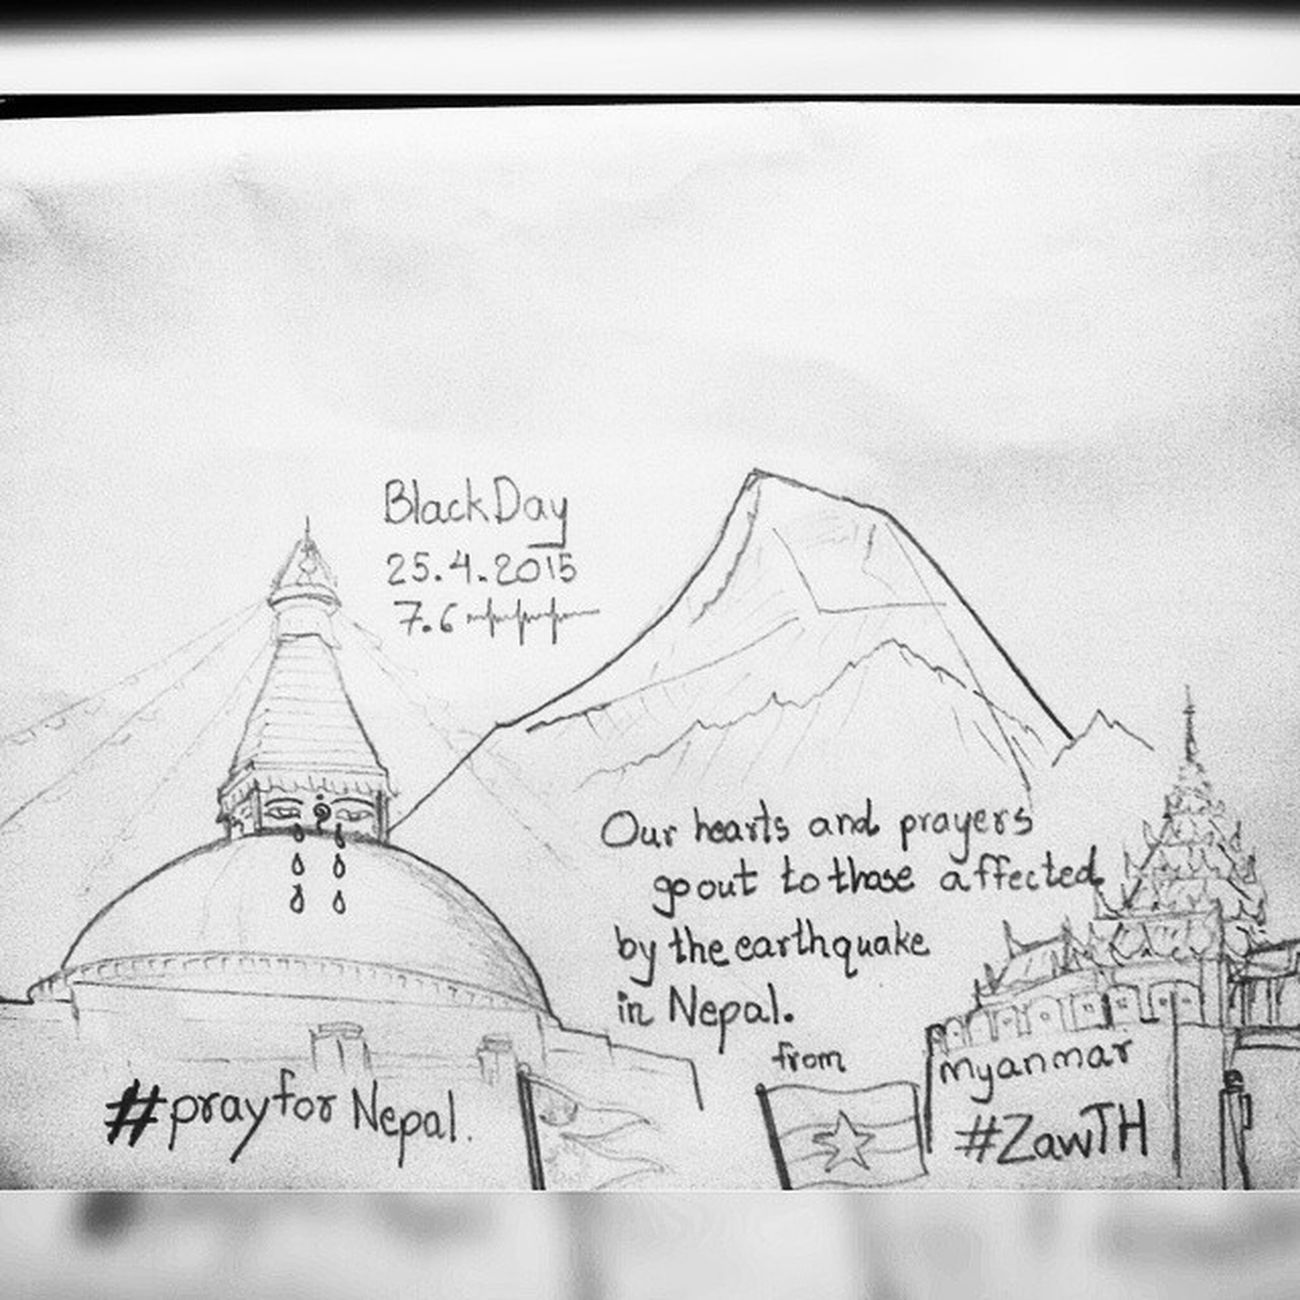 Black Day of Himalayas 25.4.2015 Our hearts and prayers go out to those affected by the earthquake in Nepal. From Myanmar. Zawth PrayforNepal Nepal Nepalquake Nepalquake2015 Blackday Nepali  Nepalese Gorkha Kathmandu Pokhara Hiamlayas Everest Myanmar Burma Drawing Igersasia Igersnepal Igersmandalay Igersmyanmar Burmeseigers Vscomyanmar Pencilsketch Earthquake Earthquakenepal2015 boudhanath stupa pagoda buddhisttemple